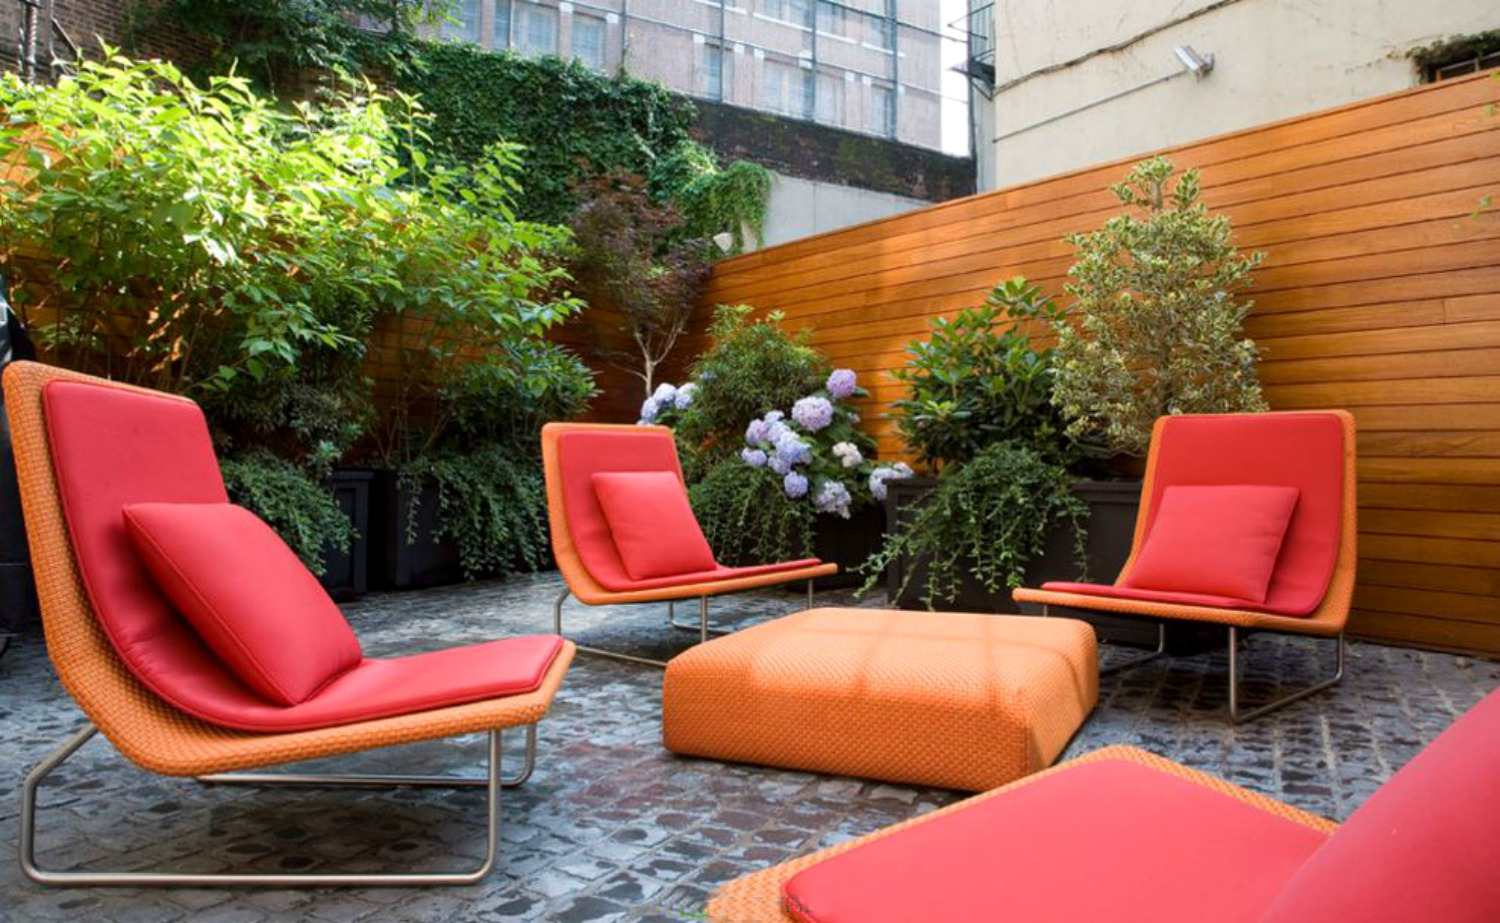 Vertical garden near wooden wall highlighted by orange and red furniture.